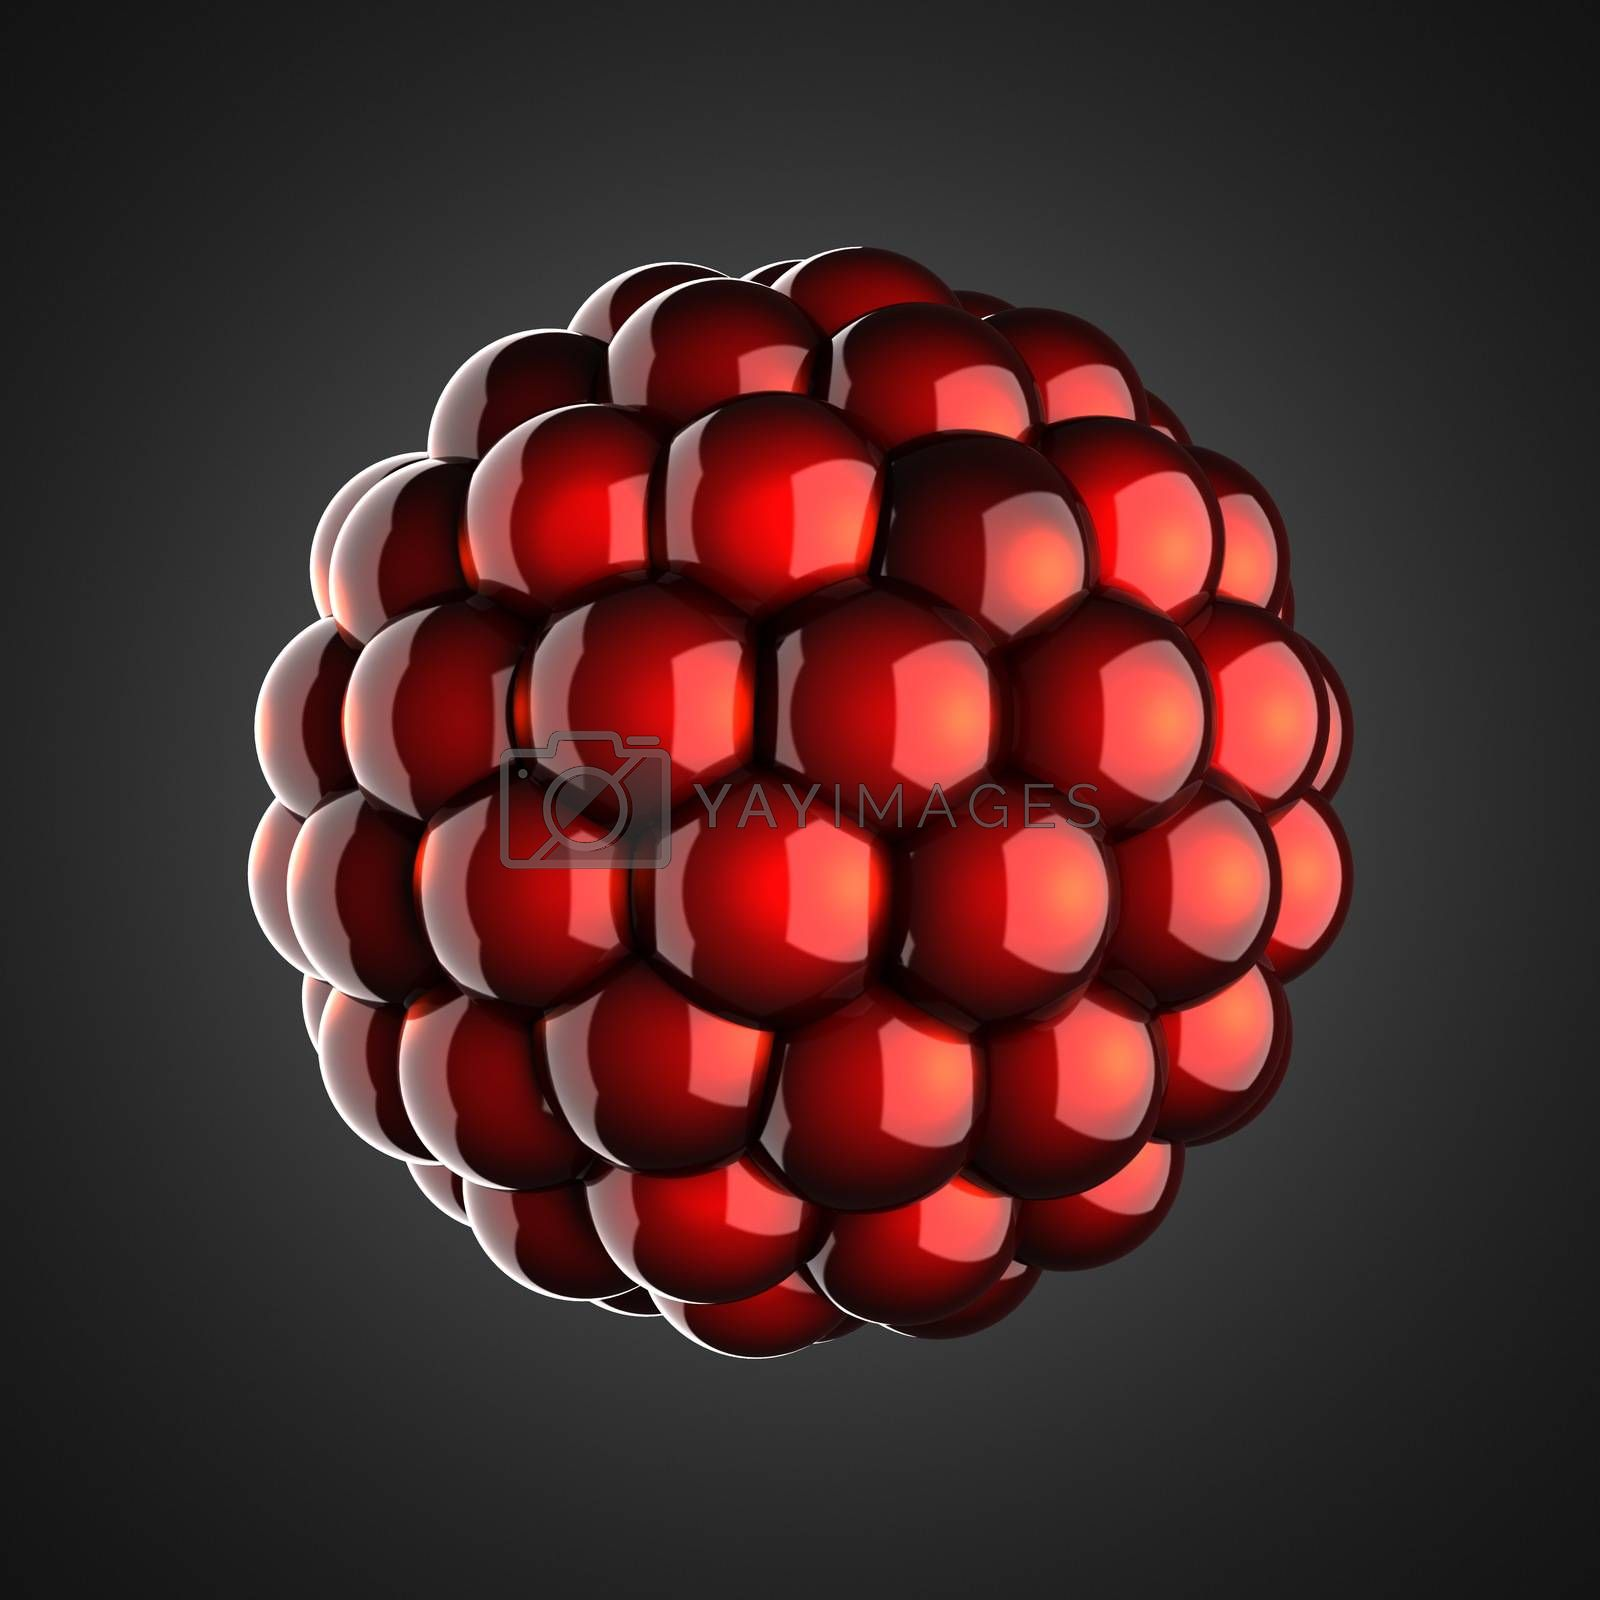 Royalty free image of A single atom scientific illustration by videodoctor